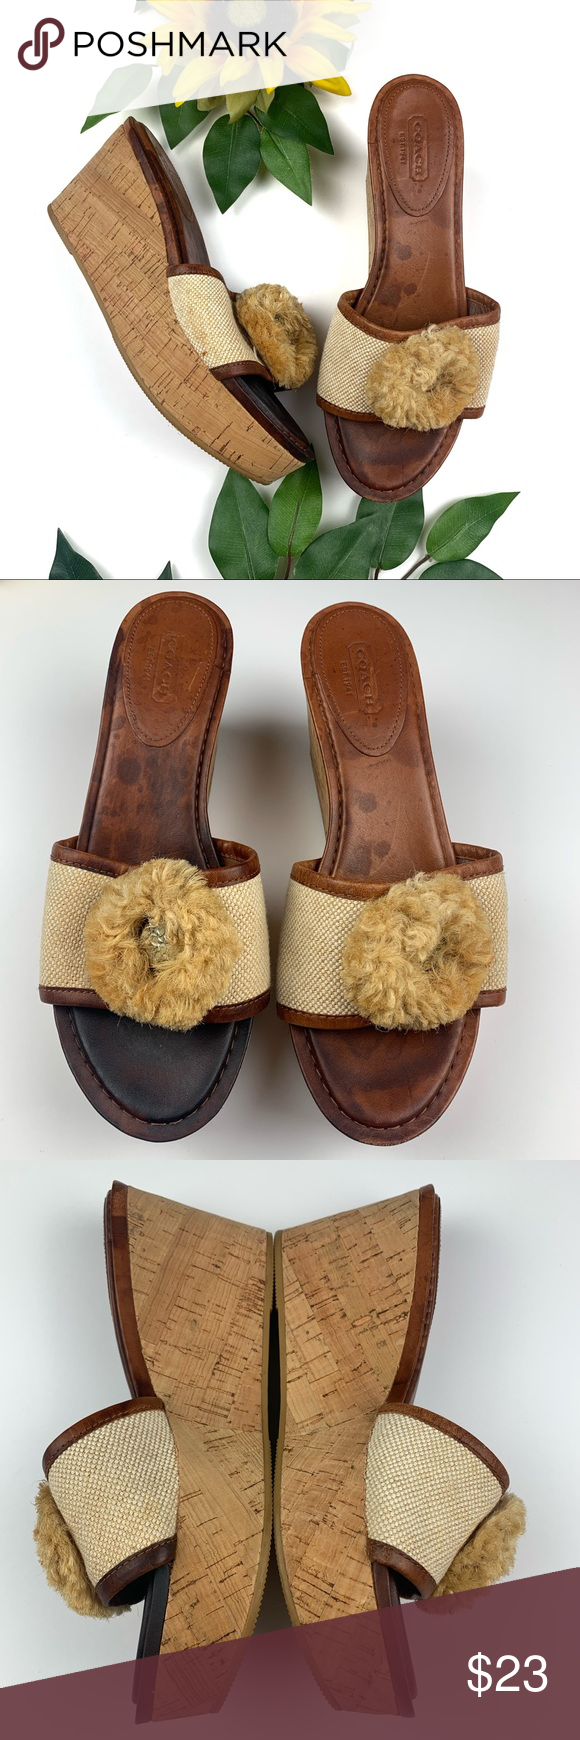 f7b40dc566 Coach Jazmin Cork Wedge Leather Slide On Sandals These are in good used  condition. The